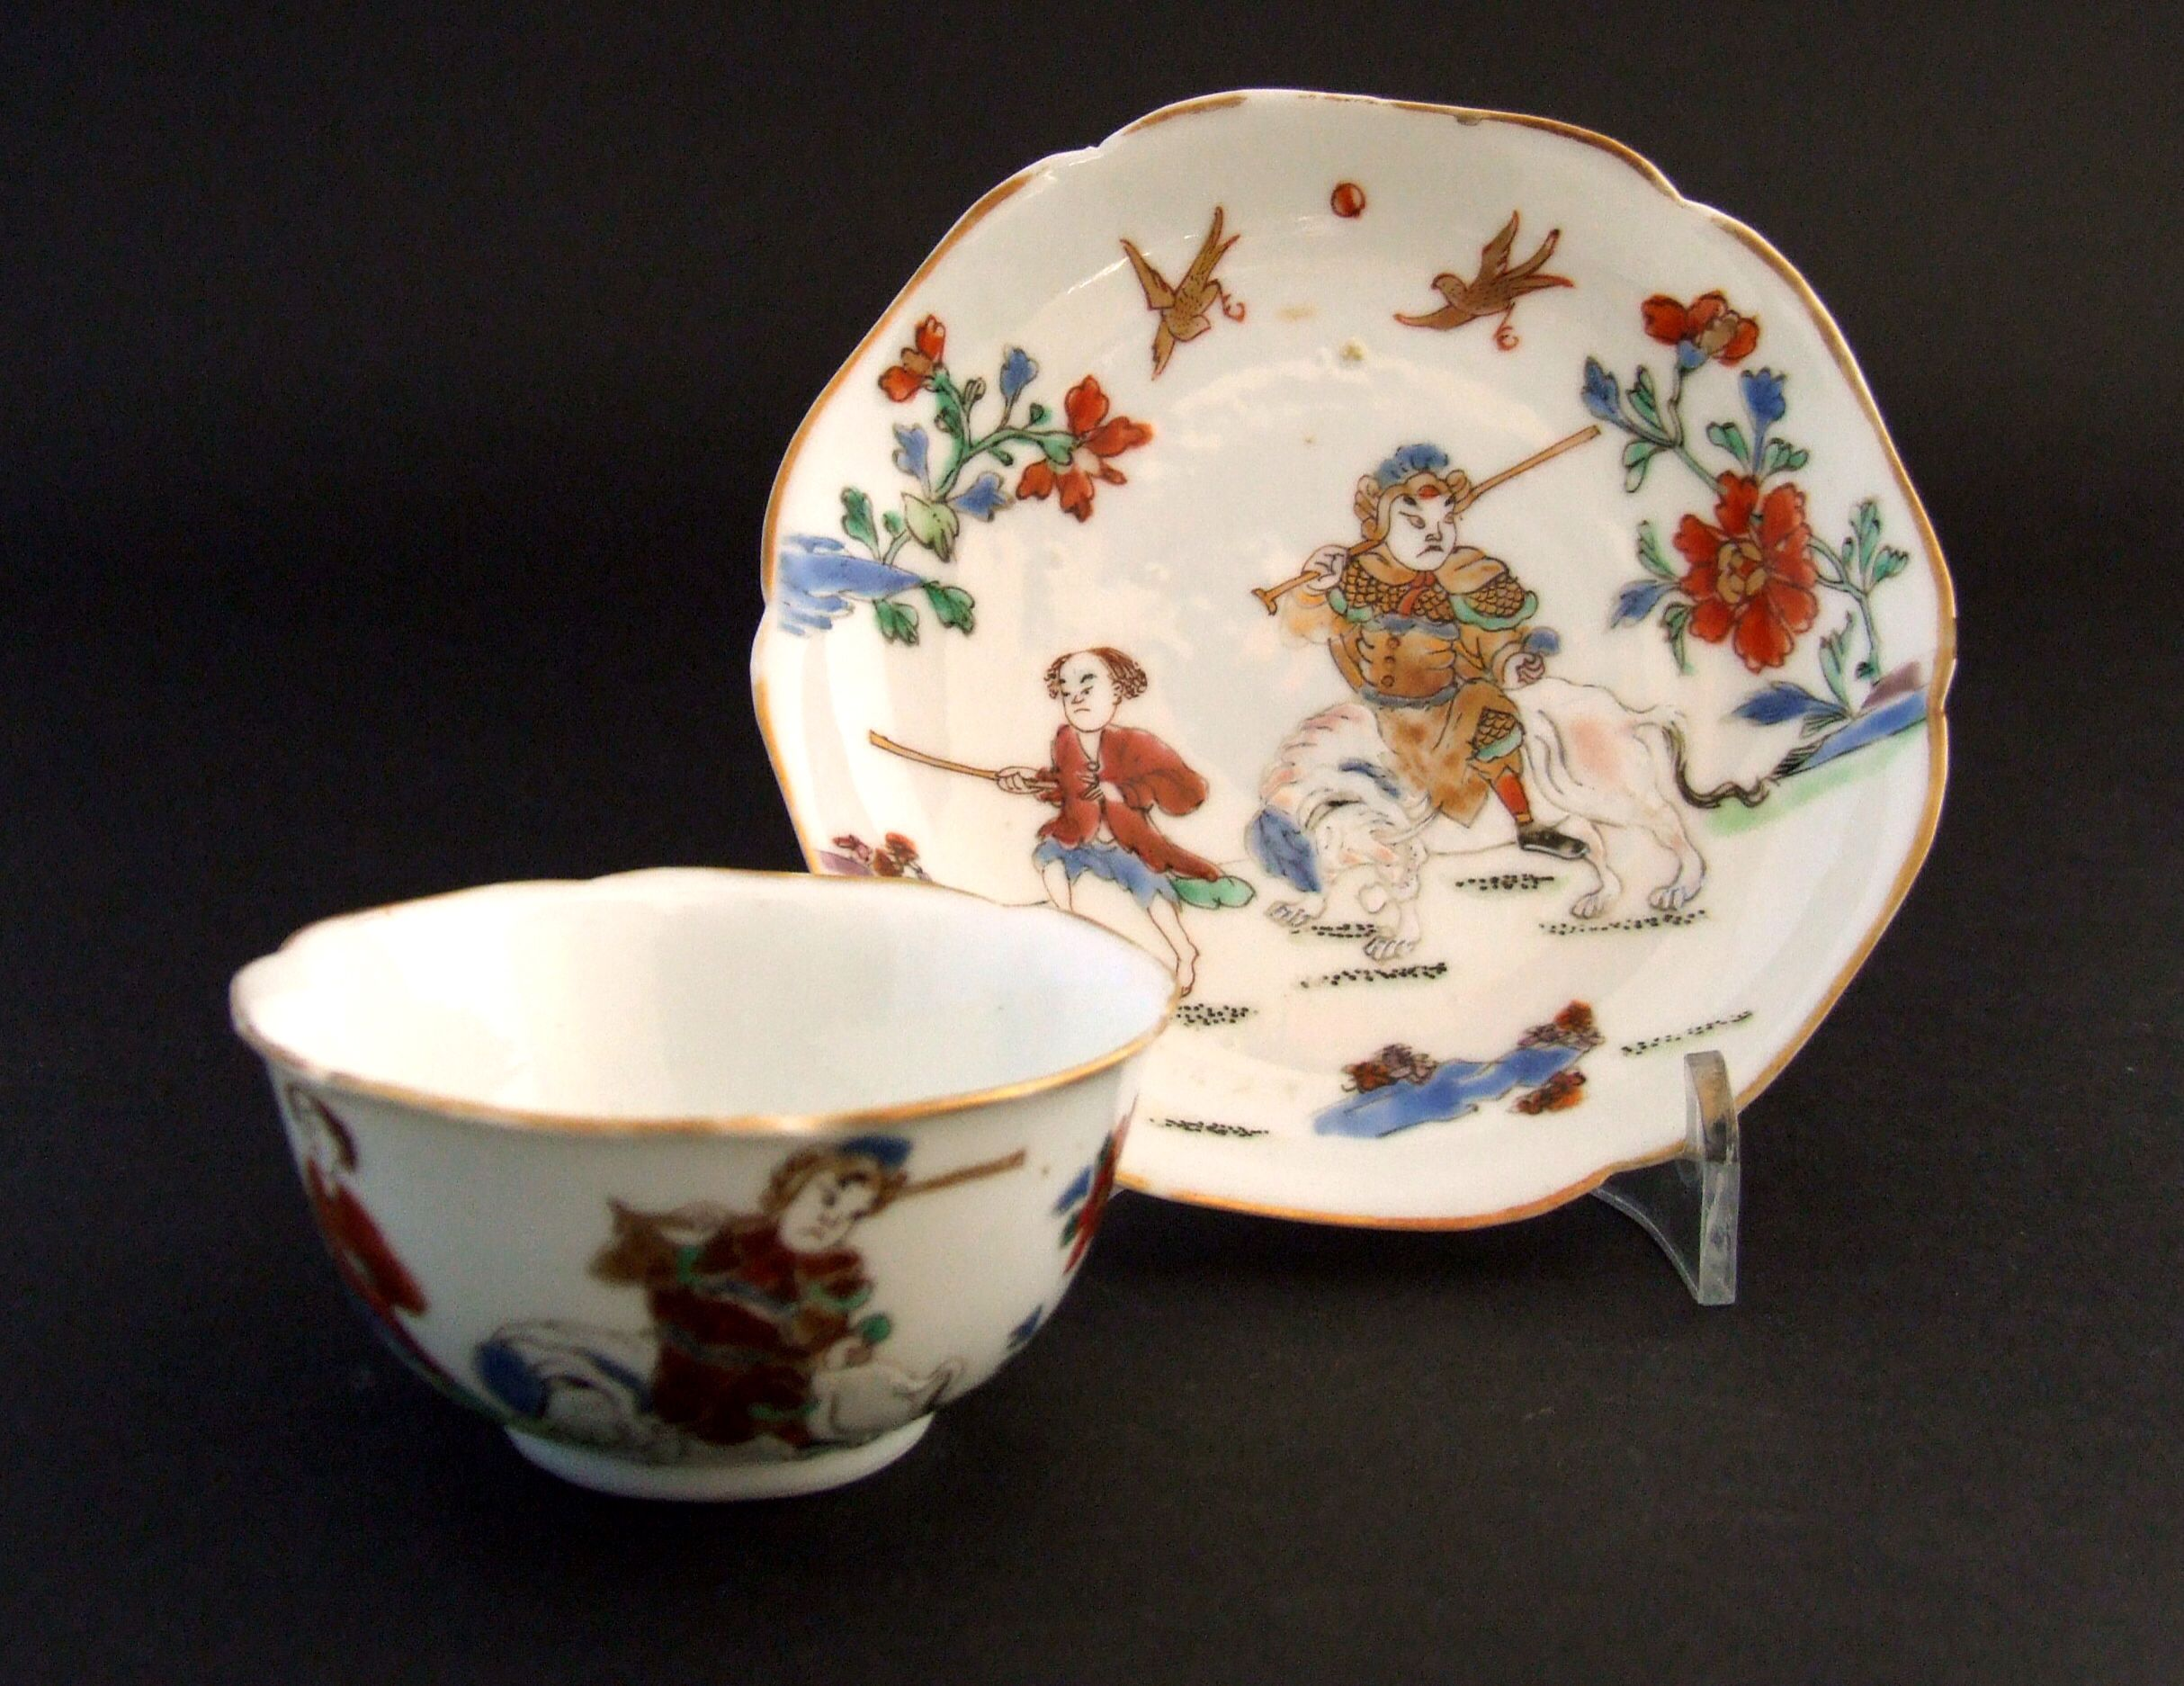 A Rare Chinese Export Porcelain Famille Rose Teabowl and Saucer, Yongzheng Period 1723-1735. This rare, well painted Famille Rose Porcelain teabowl and saucer is painted with a curious scene of a armoured Chinese solider riding a white elephant with an attendant in European dress.